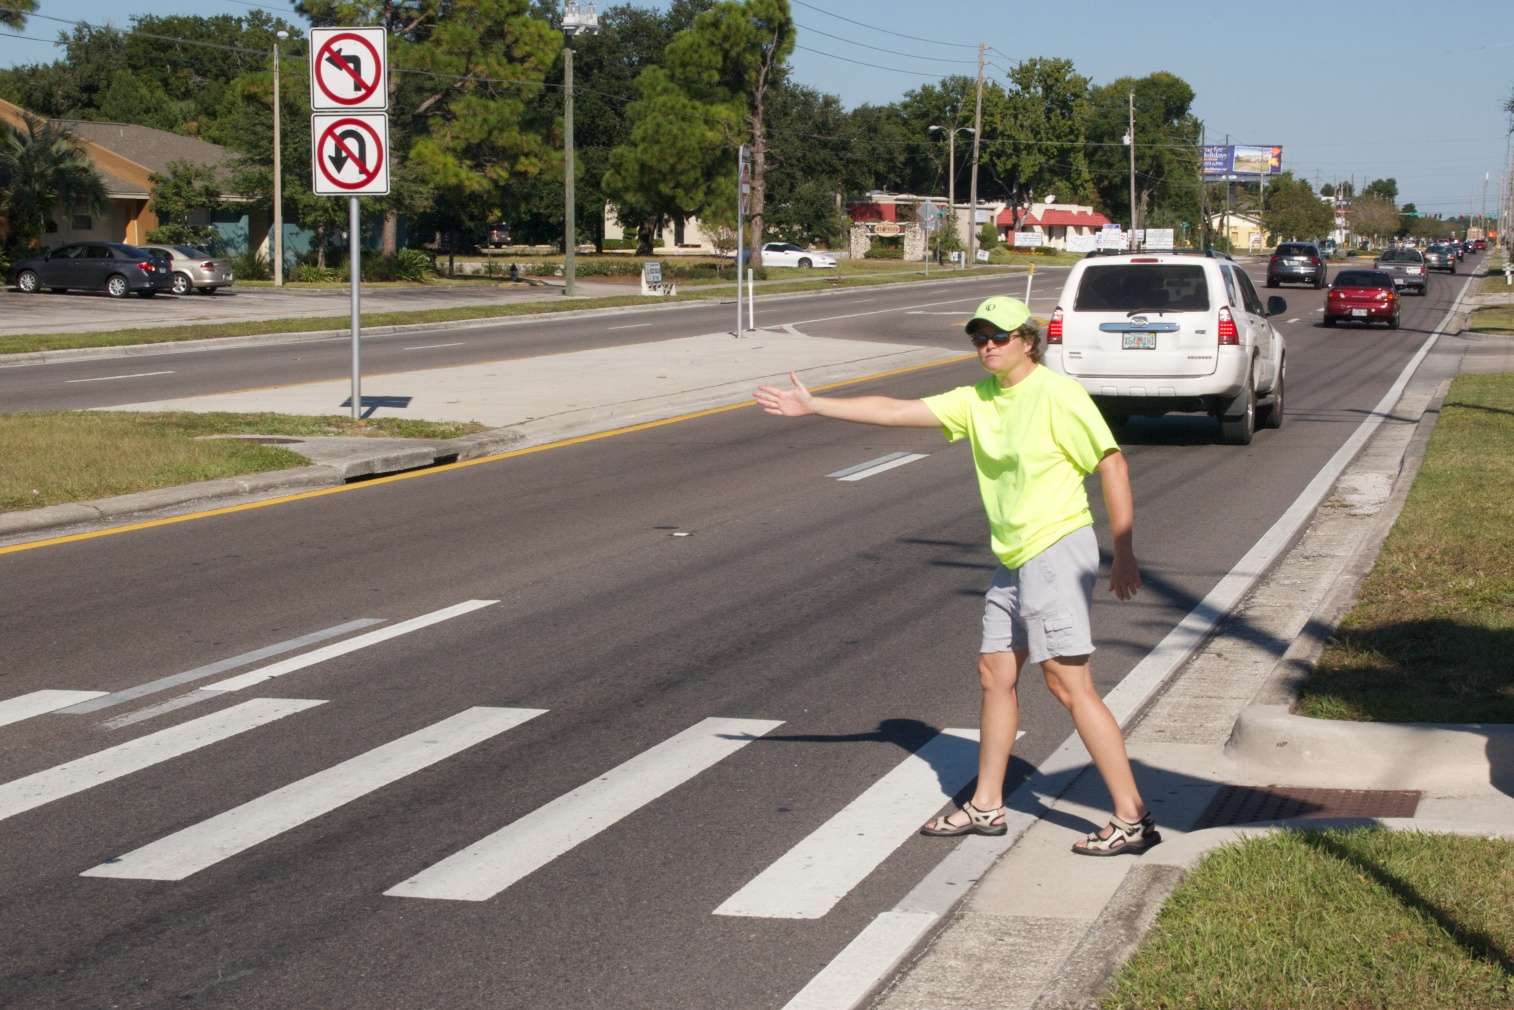 pedestrian crossing at crosswalk